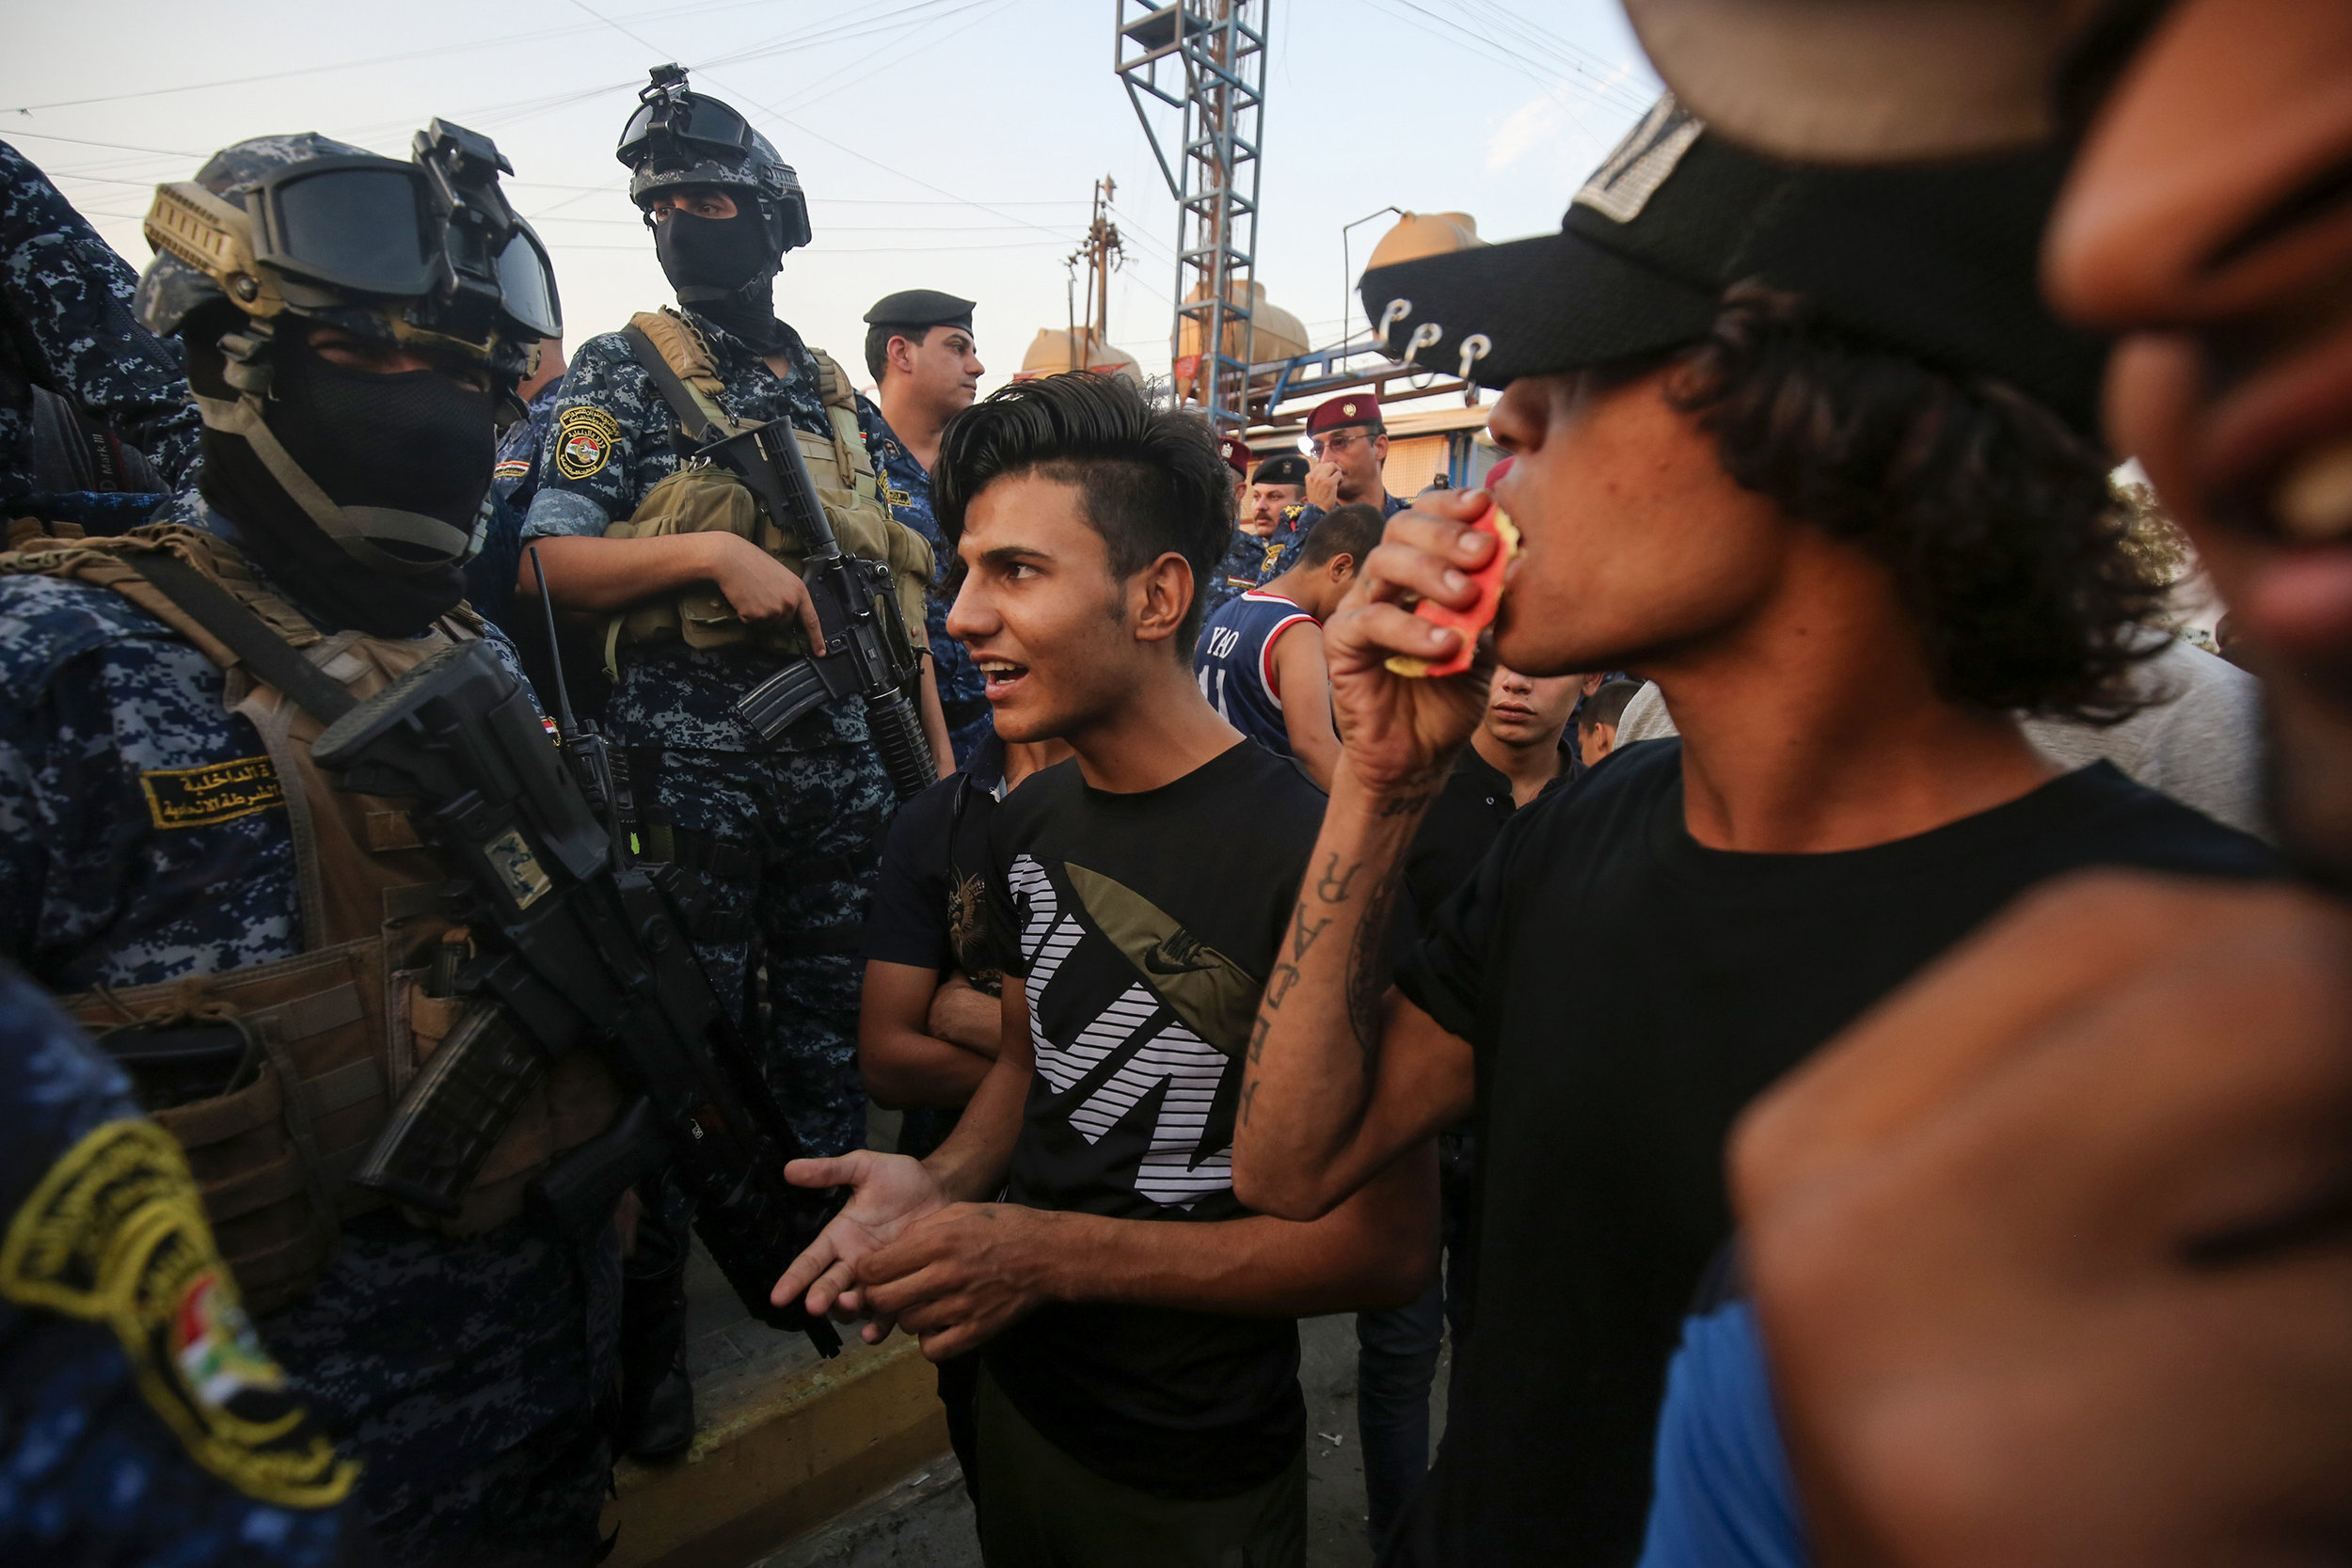 Iraqi protesters speak with police in Baghdad's predominantly Shiite district of Sadr City on Oct. 7. Ahmad Al-Rubaye/AFP/Getty Images